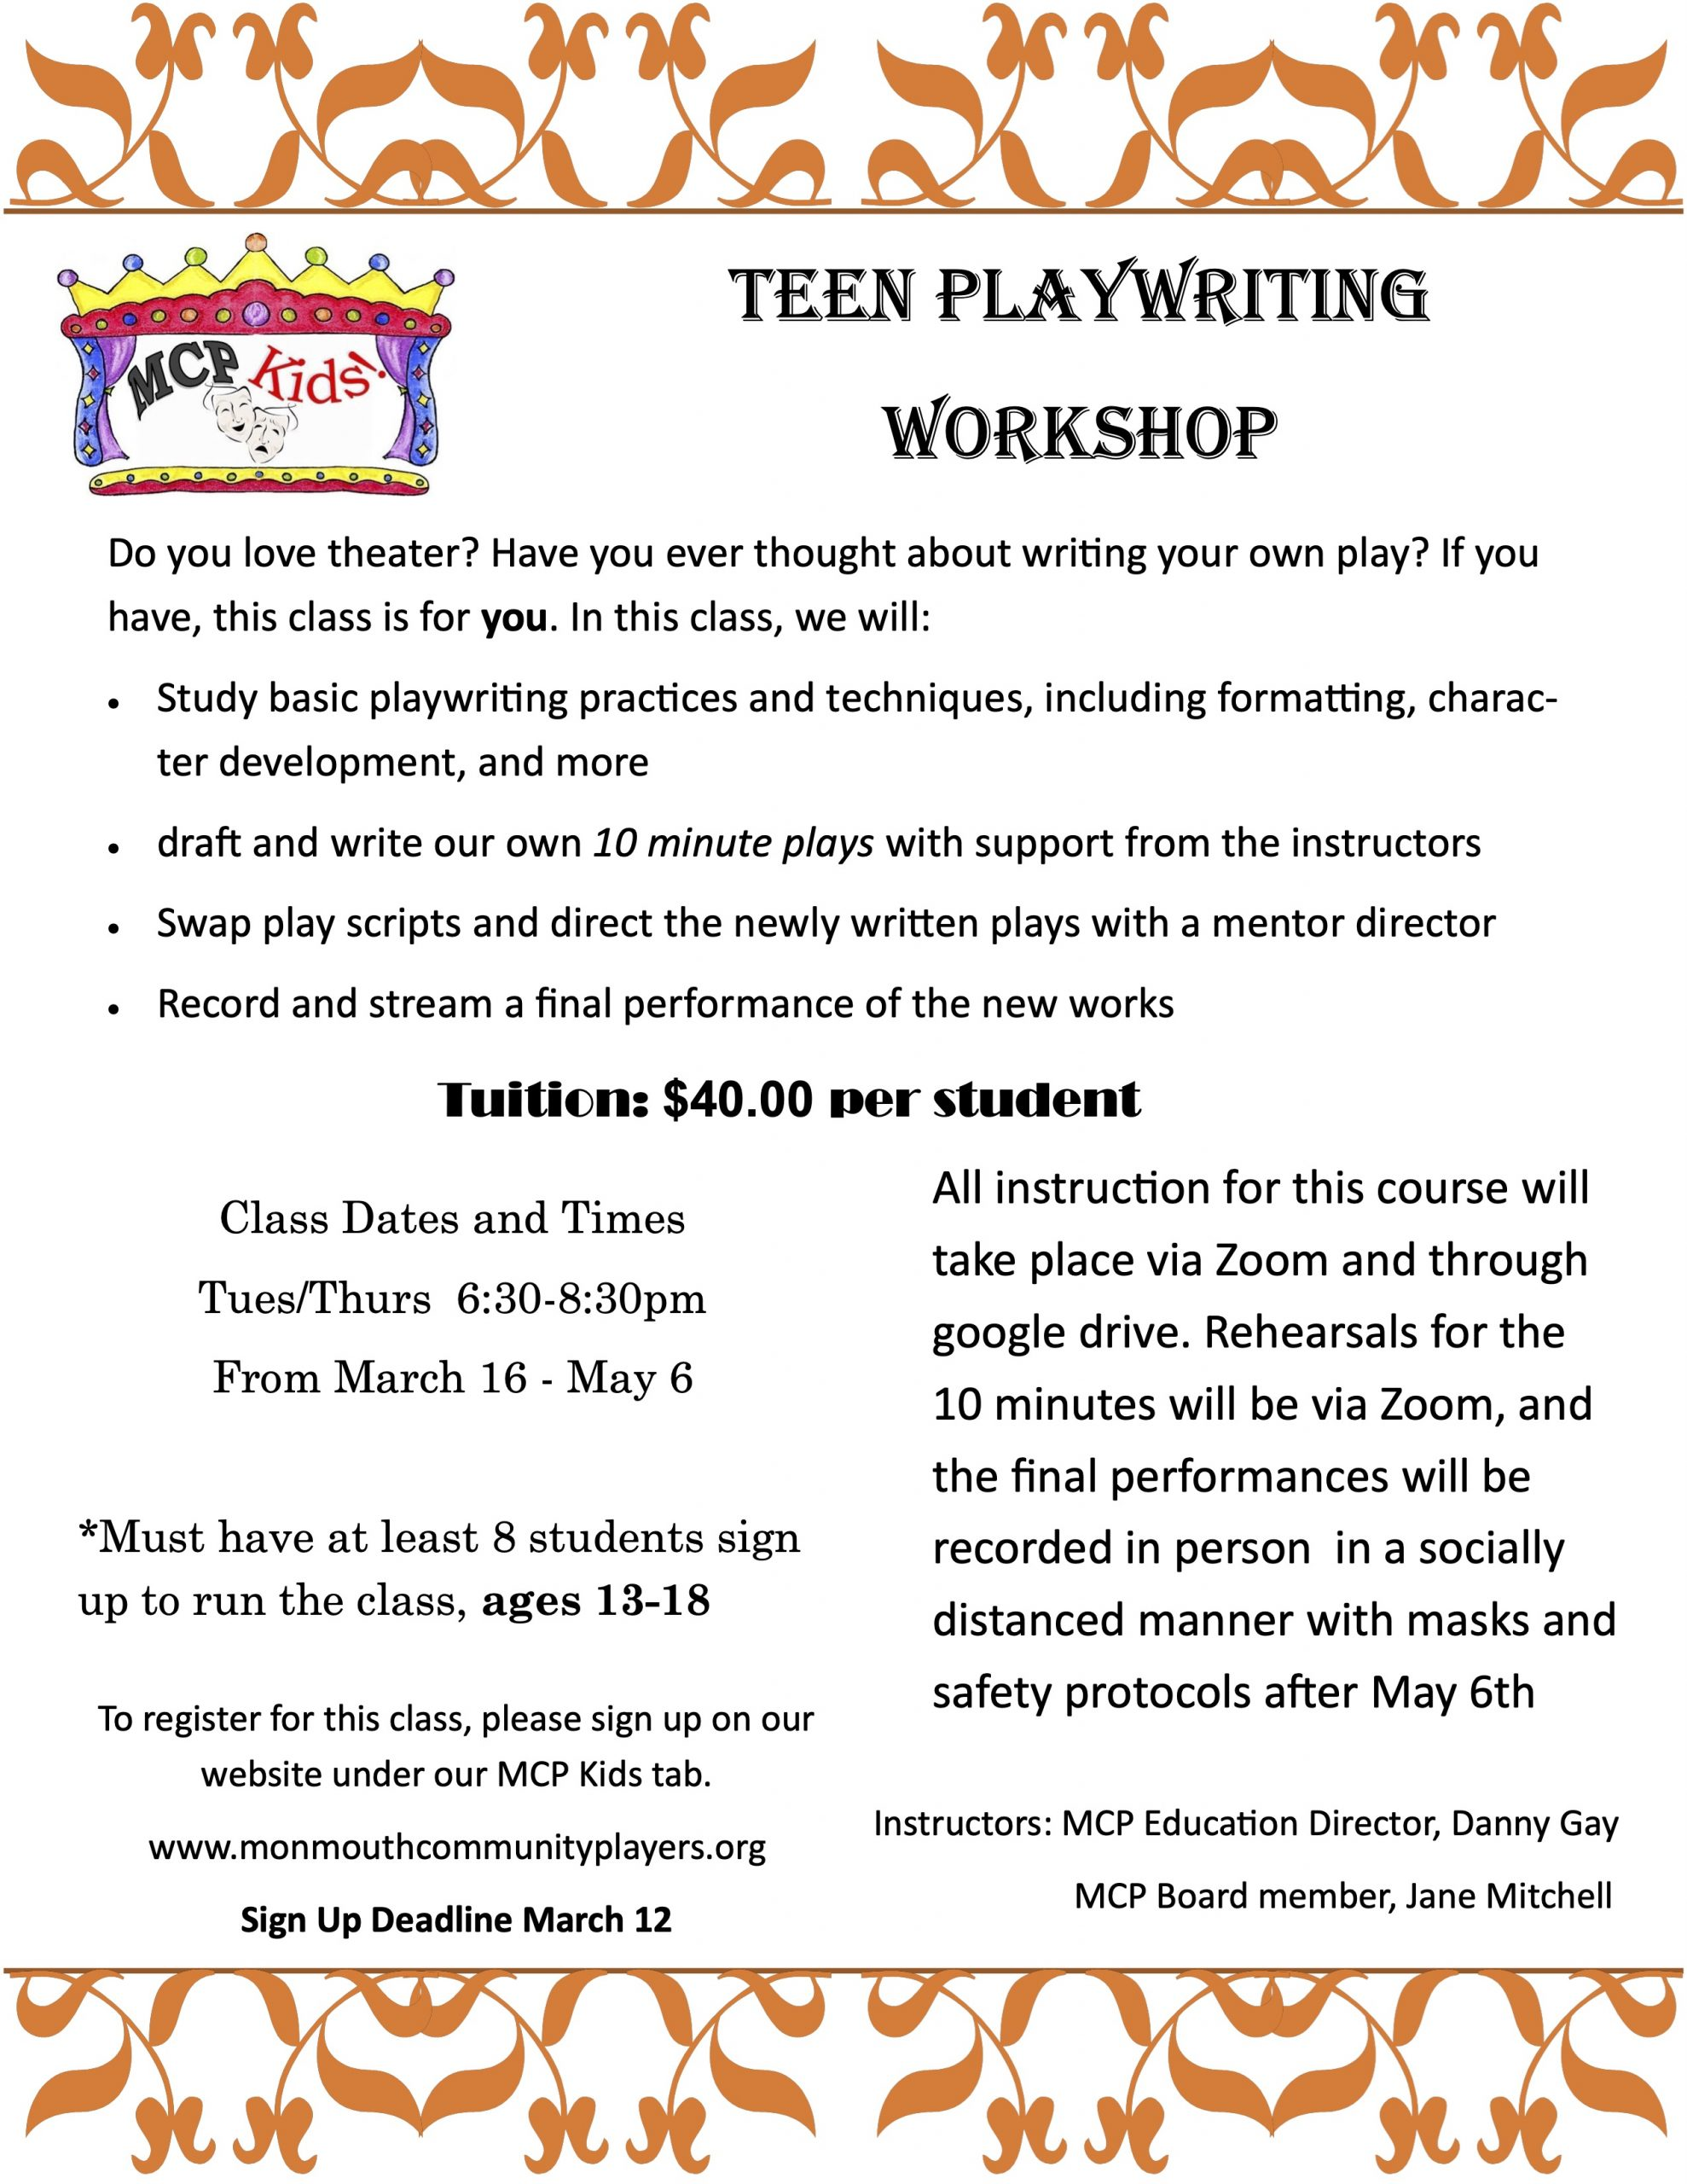 Teen-Playwriting-Poster